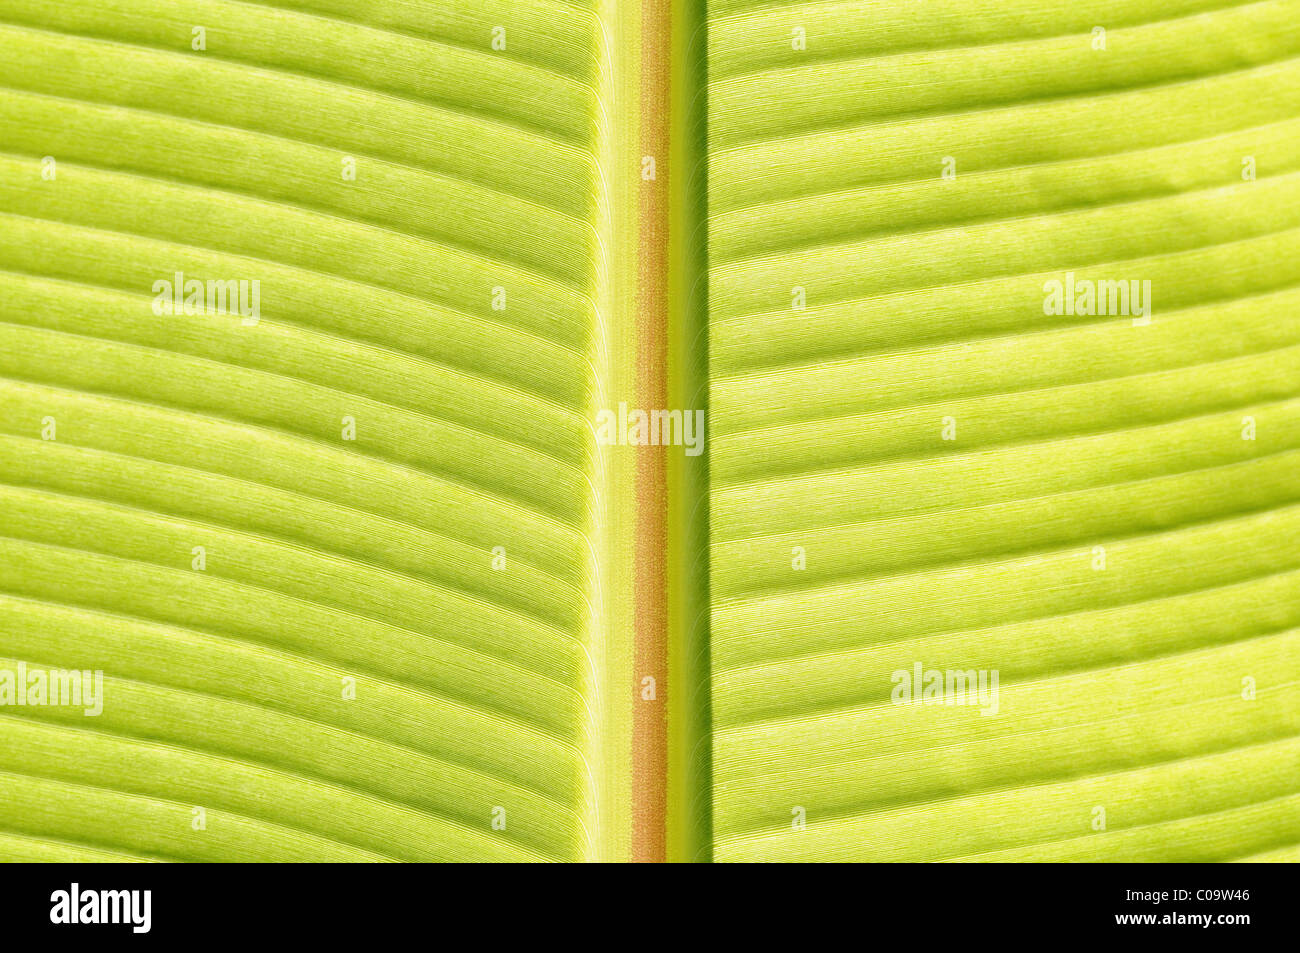 Detail of petiole and leaf blade of a banana plant (Musa) - Stock Image